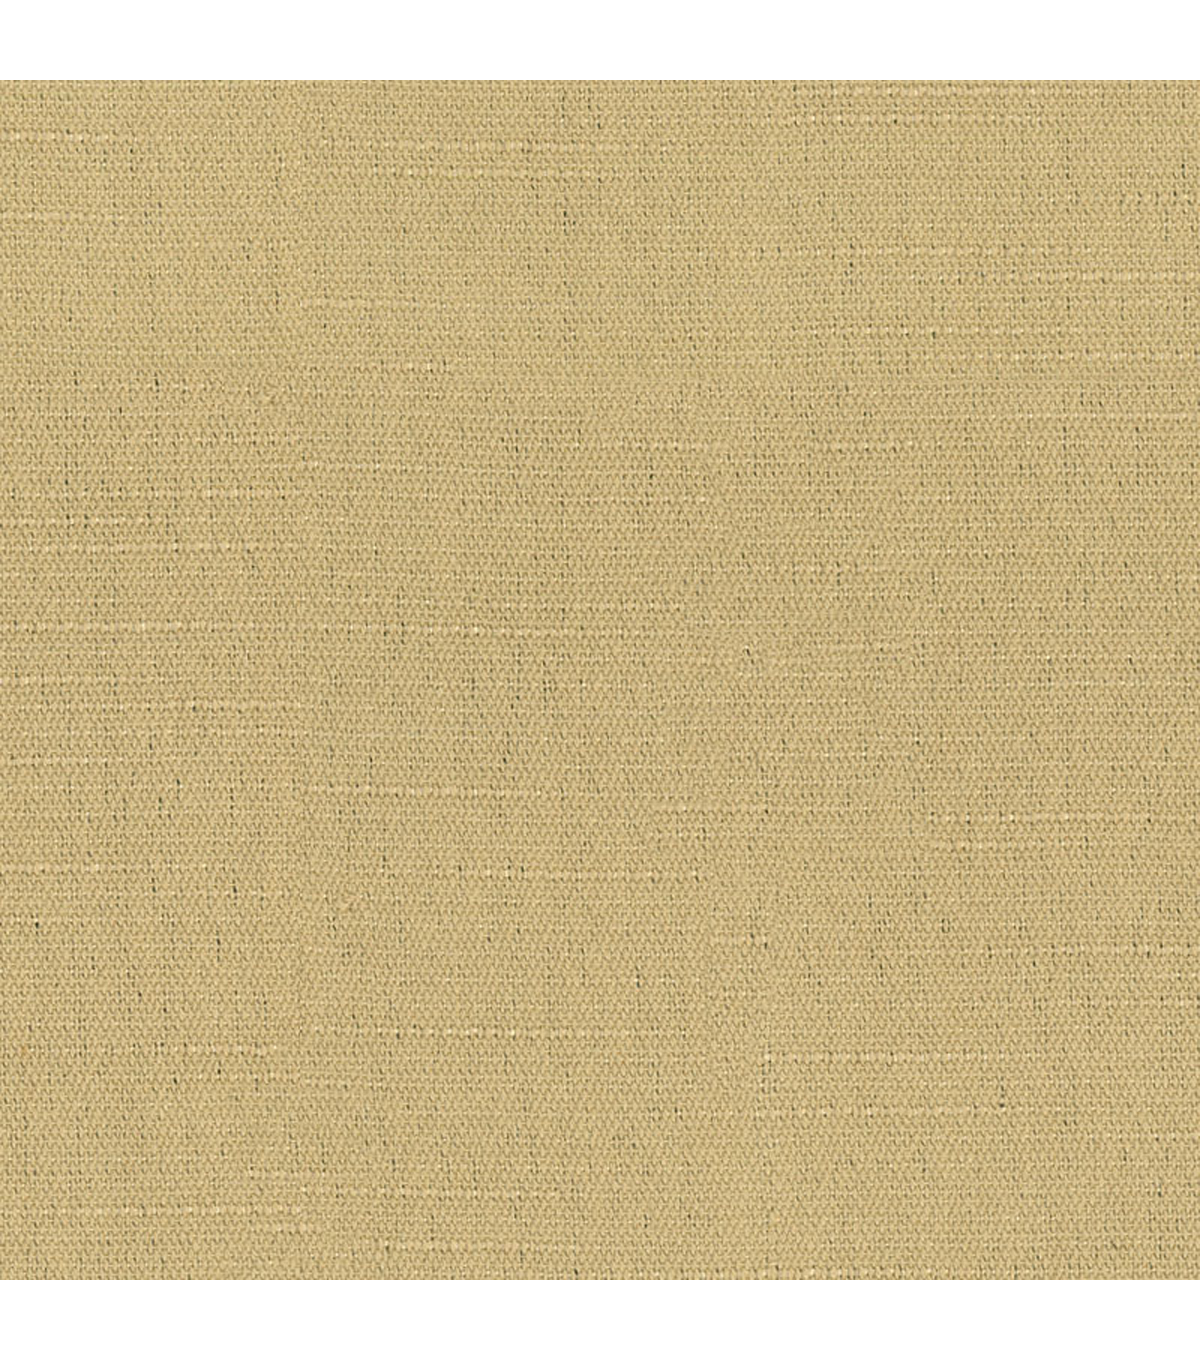 Home Decor  Solid Fabric- Richloom Studio Celeste Natural